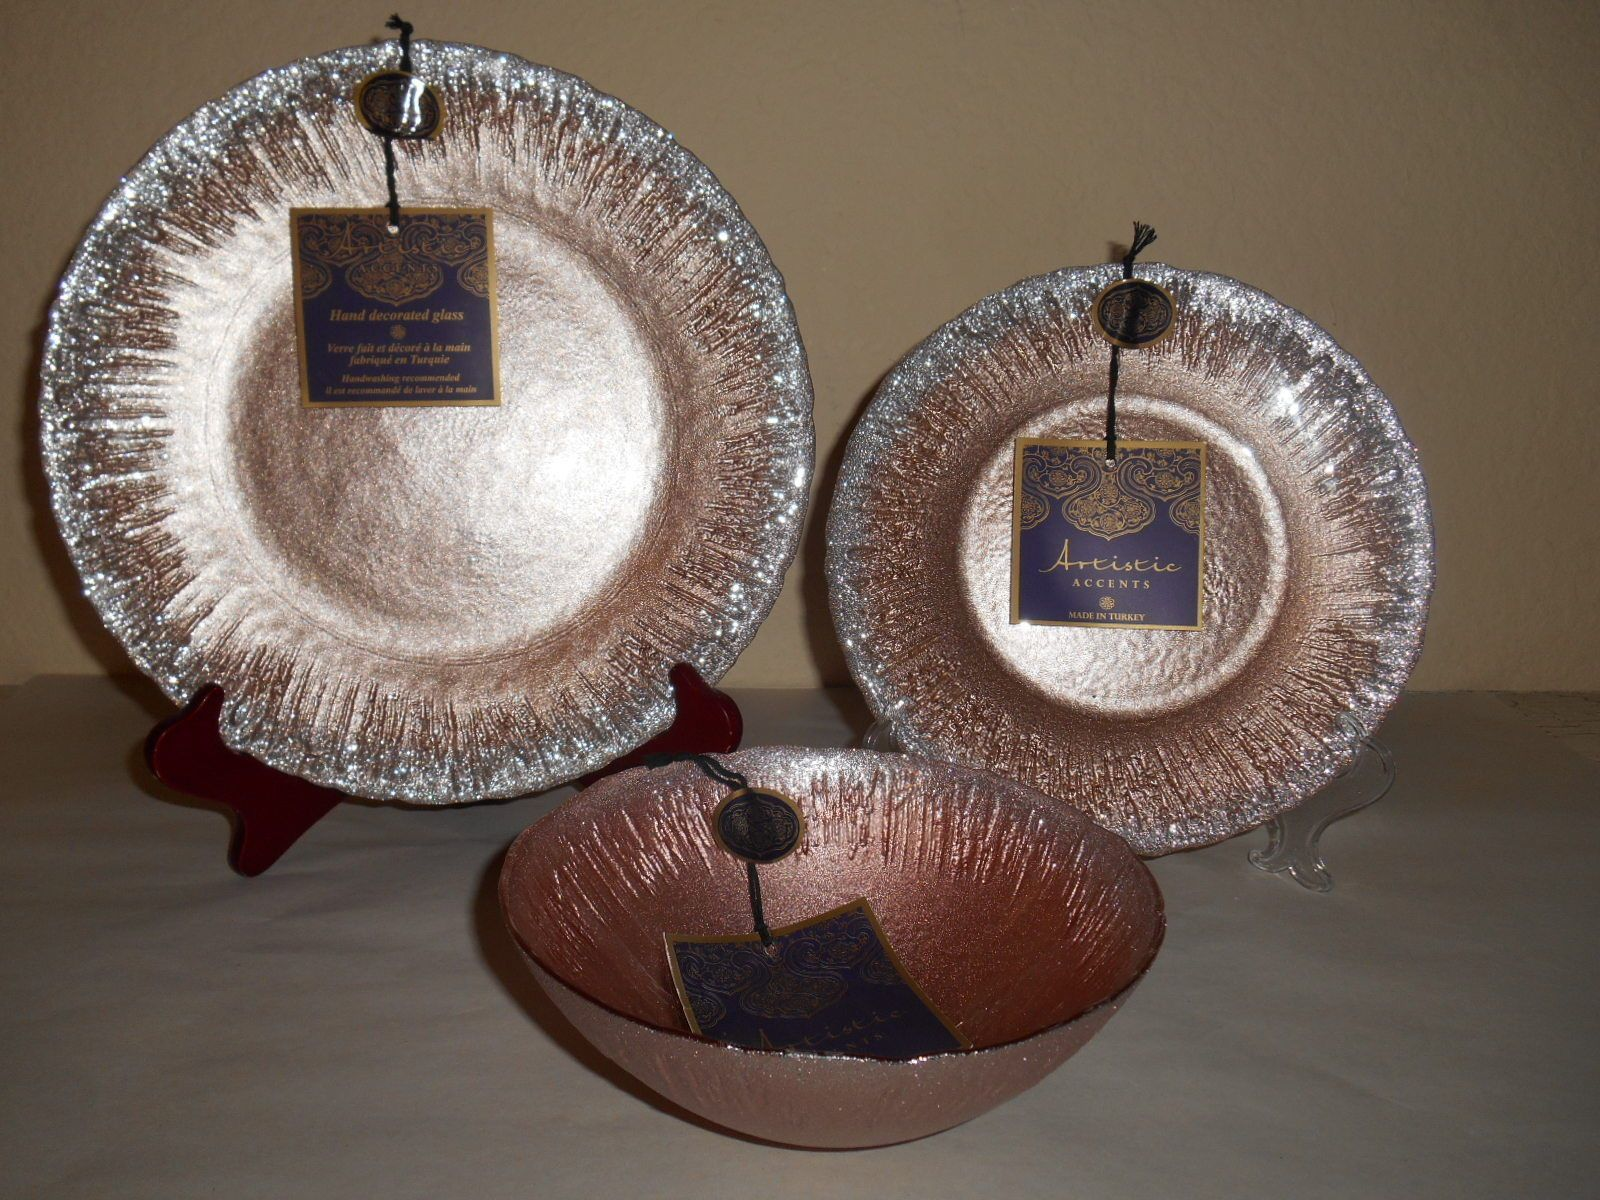 artistic accents dishes made in turkey